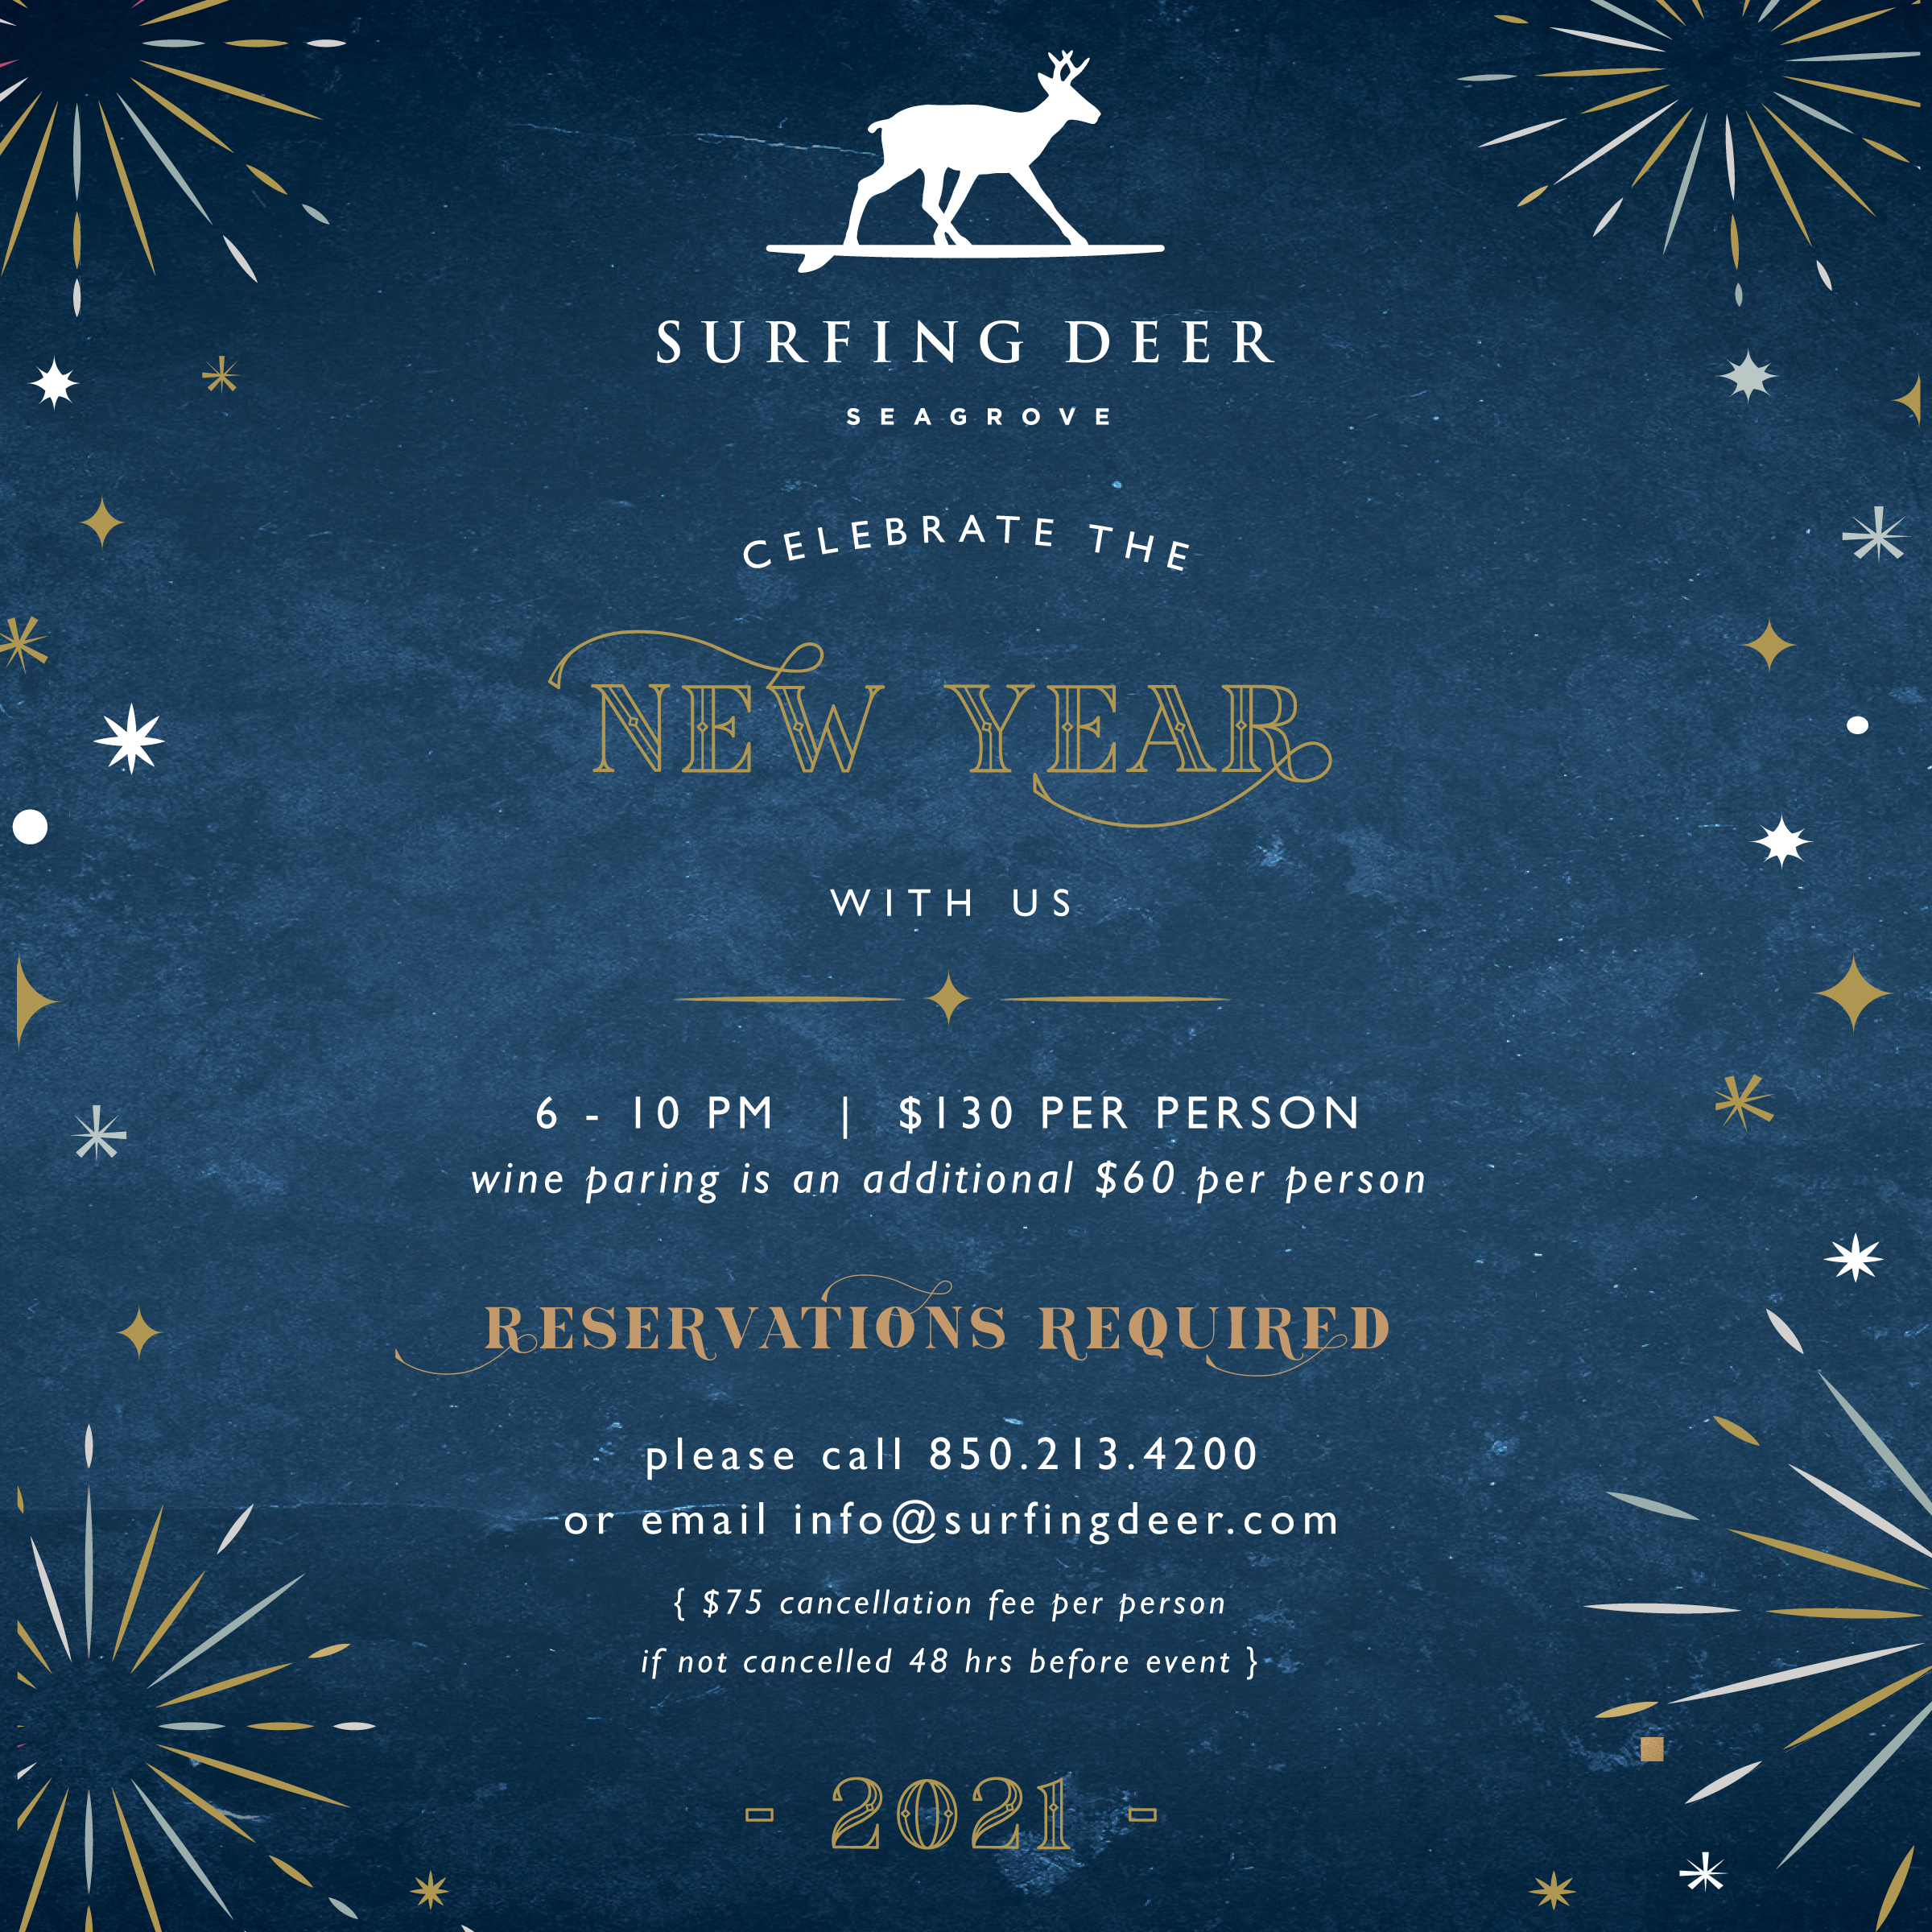 surfing deer new year's ever 2020